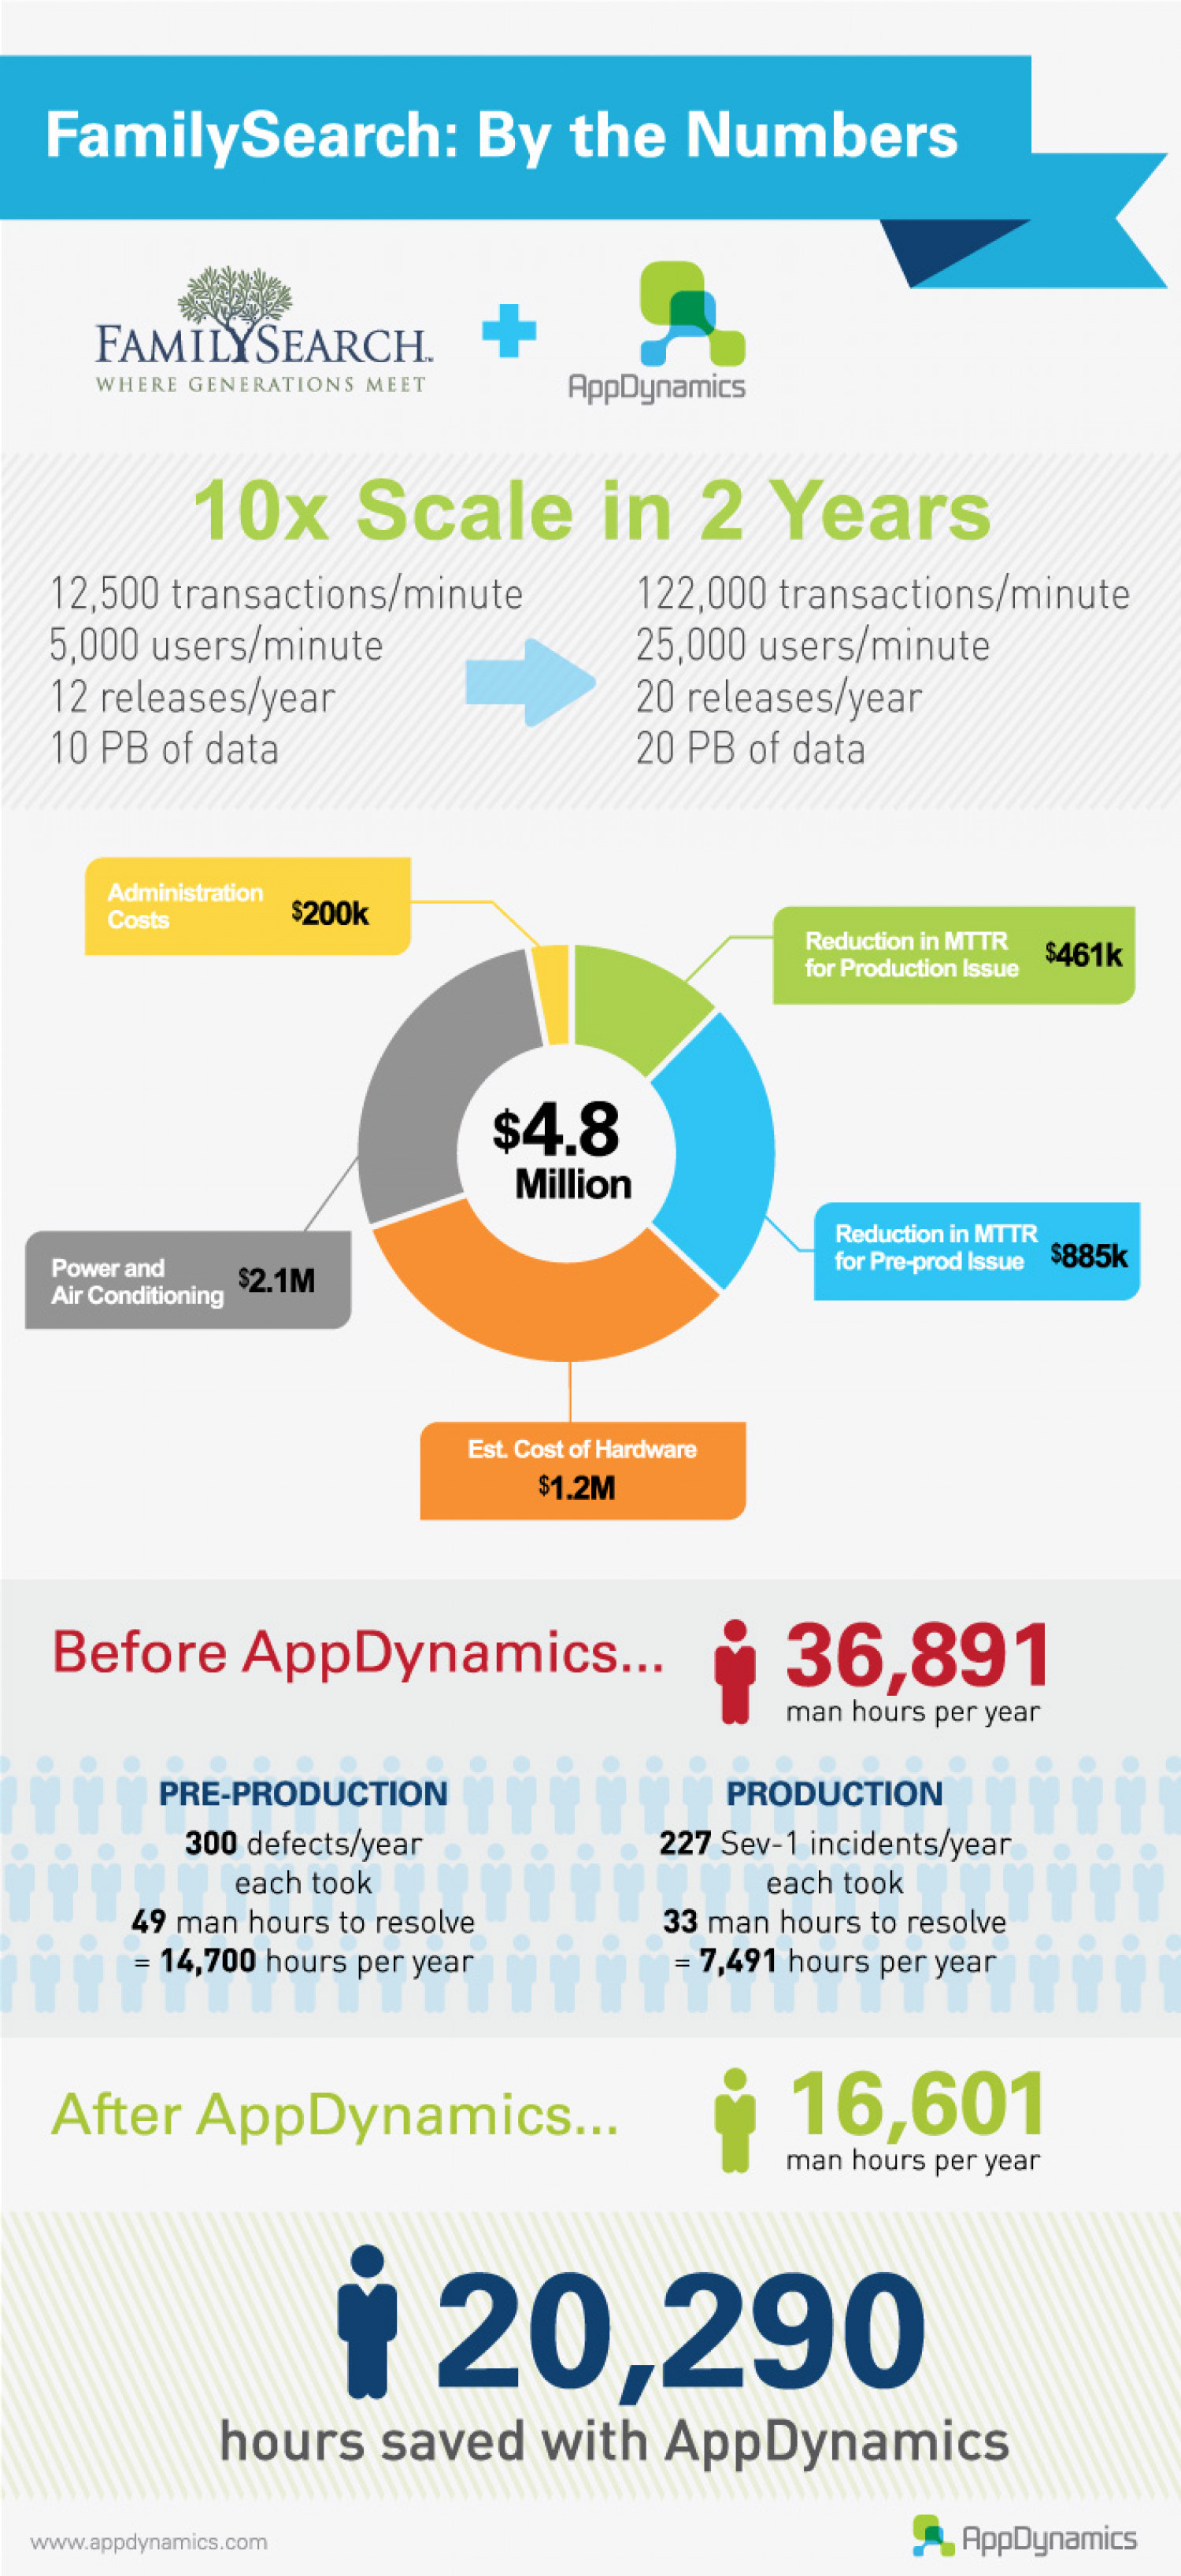 FamilySearch saves $4.8 Million with AppDynamics Infographic